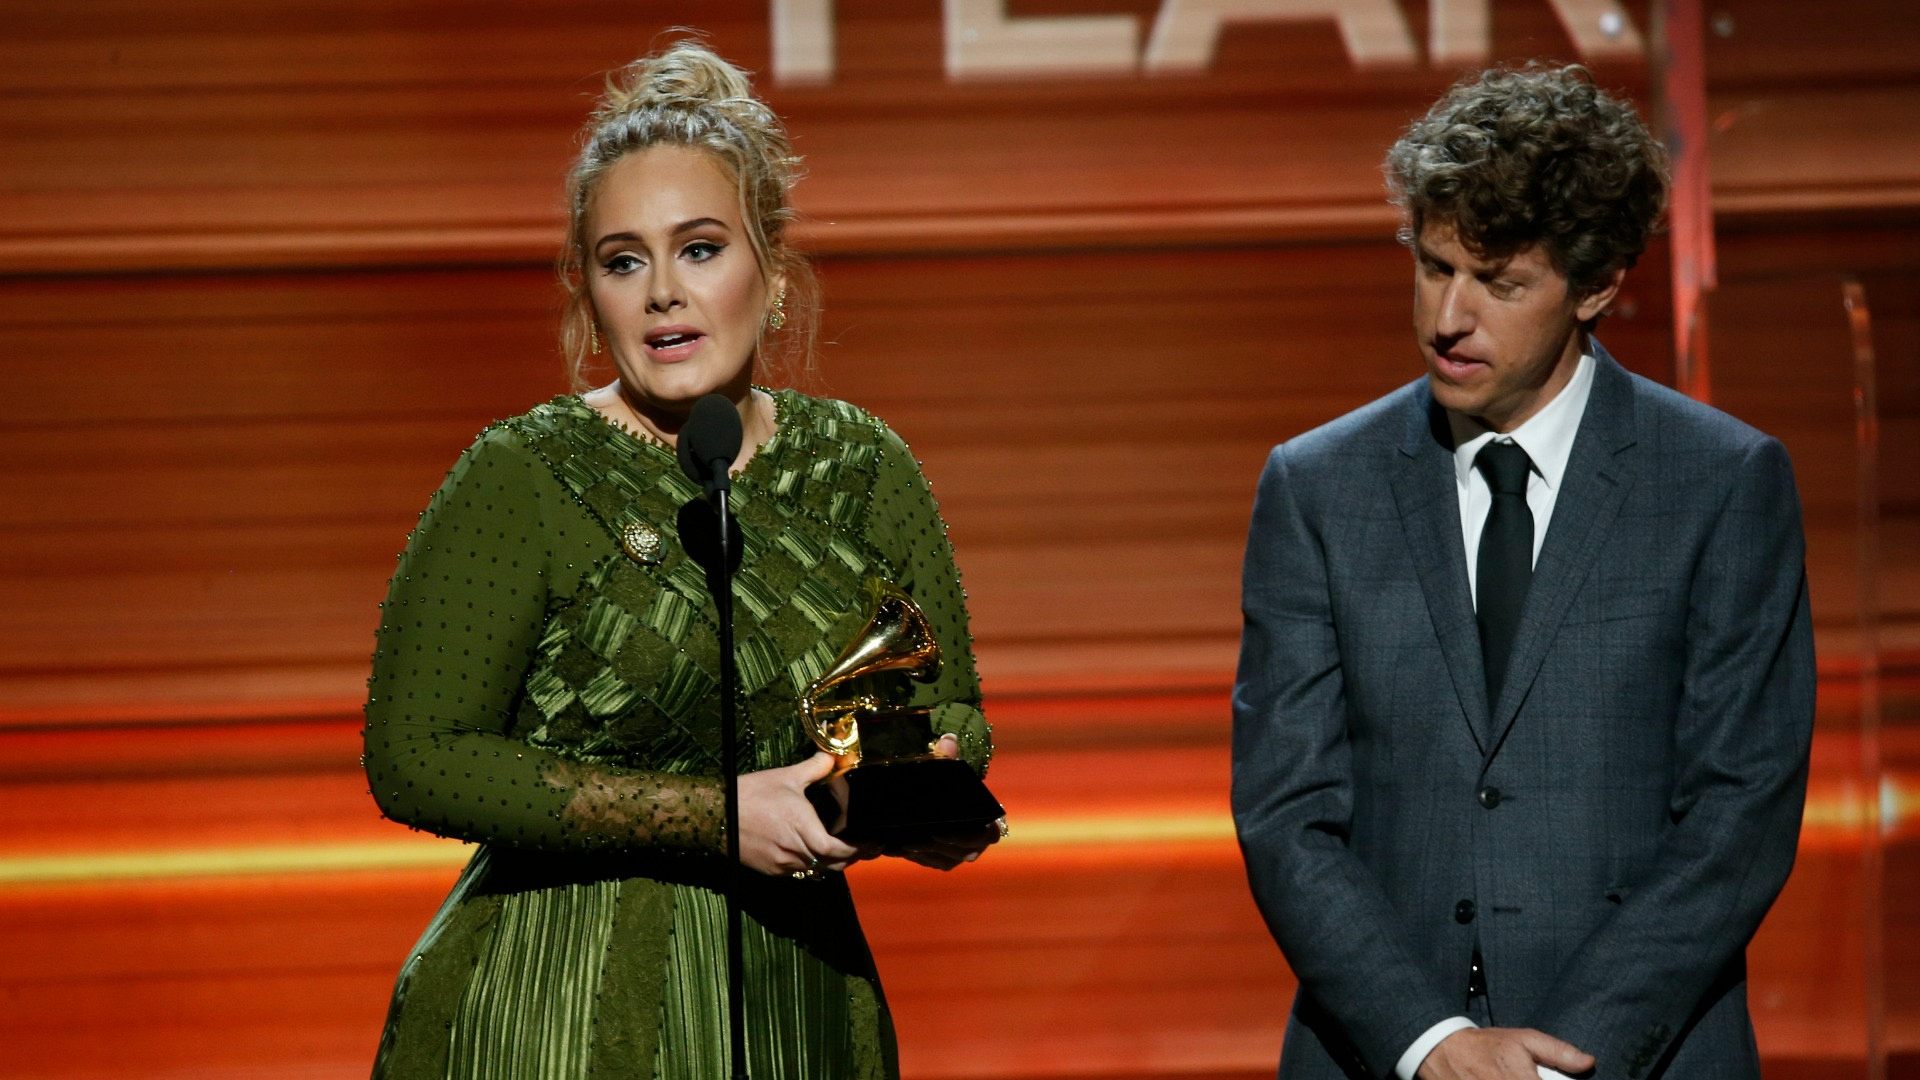 Adele wins Song Of The Year at the 2017 GRAMMY Awards